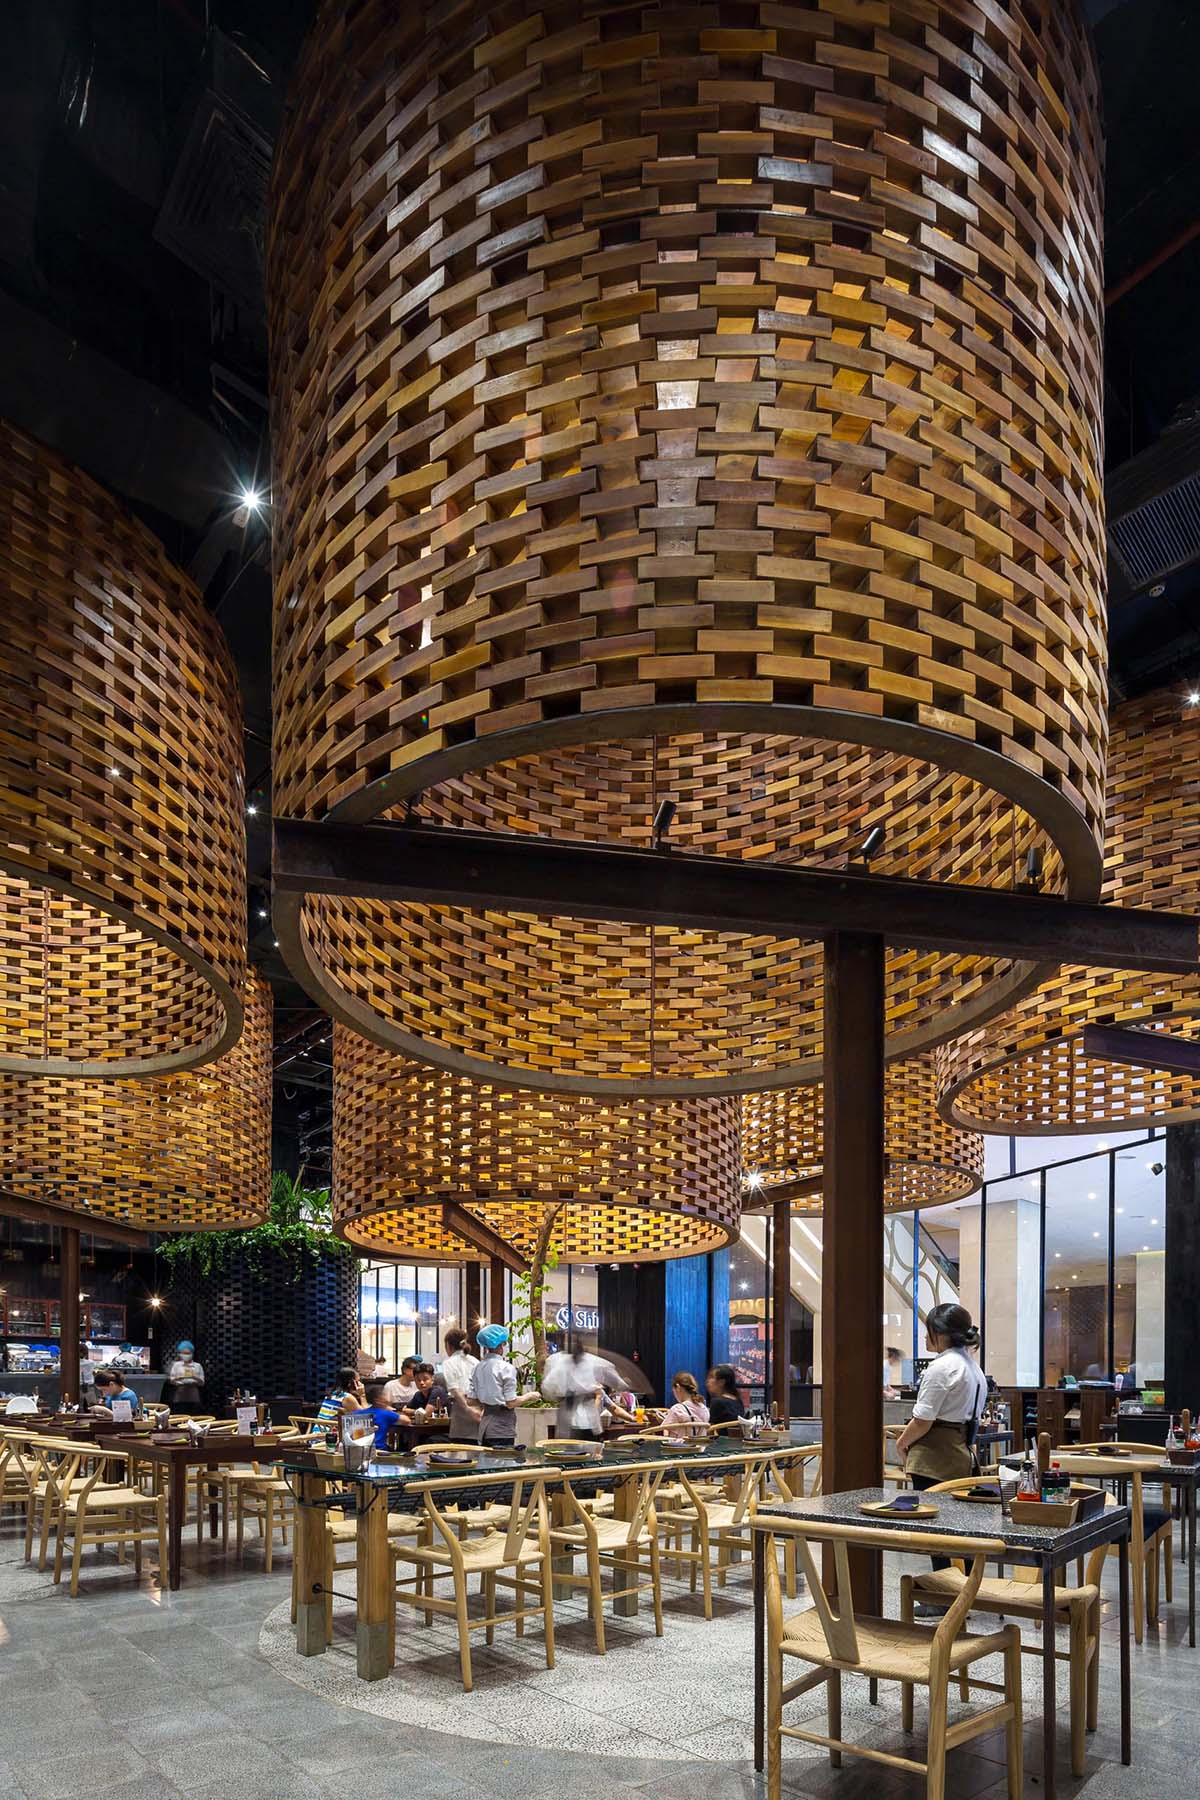 A modern restaurant with large sculptural cylinders made from wood bricks.